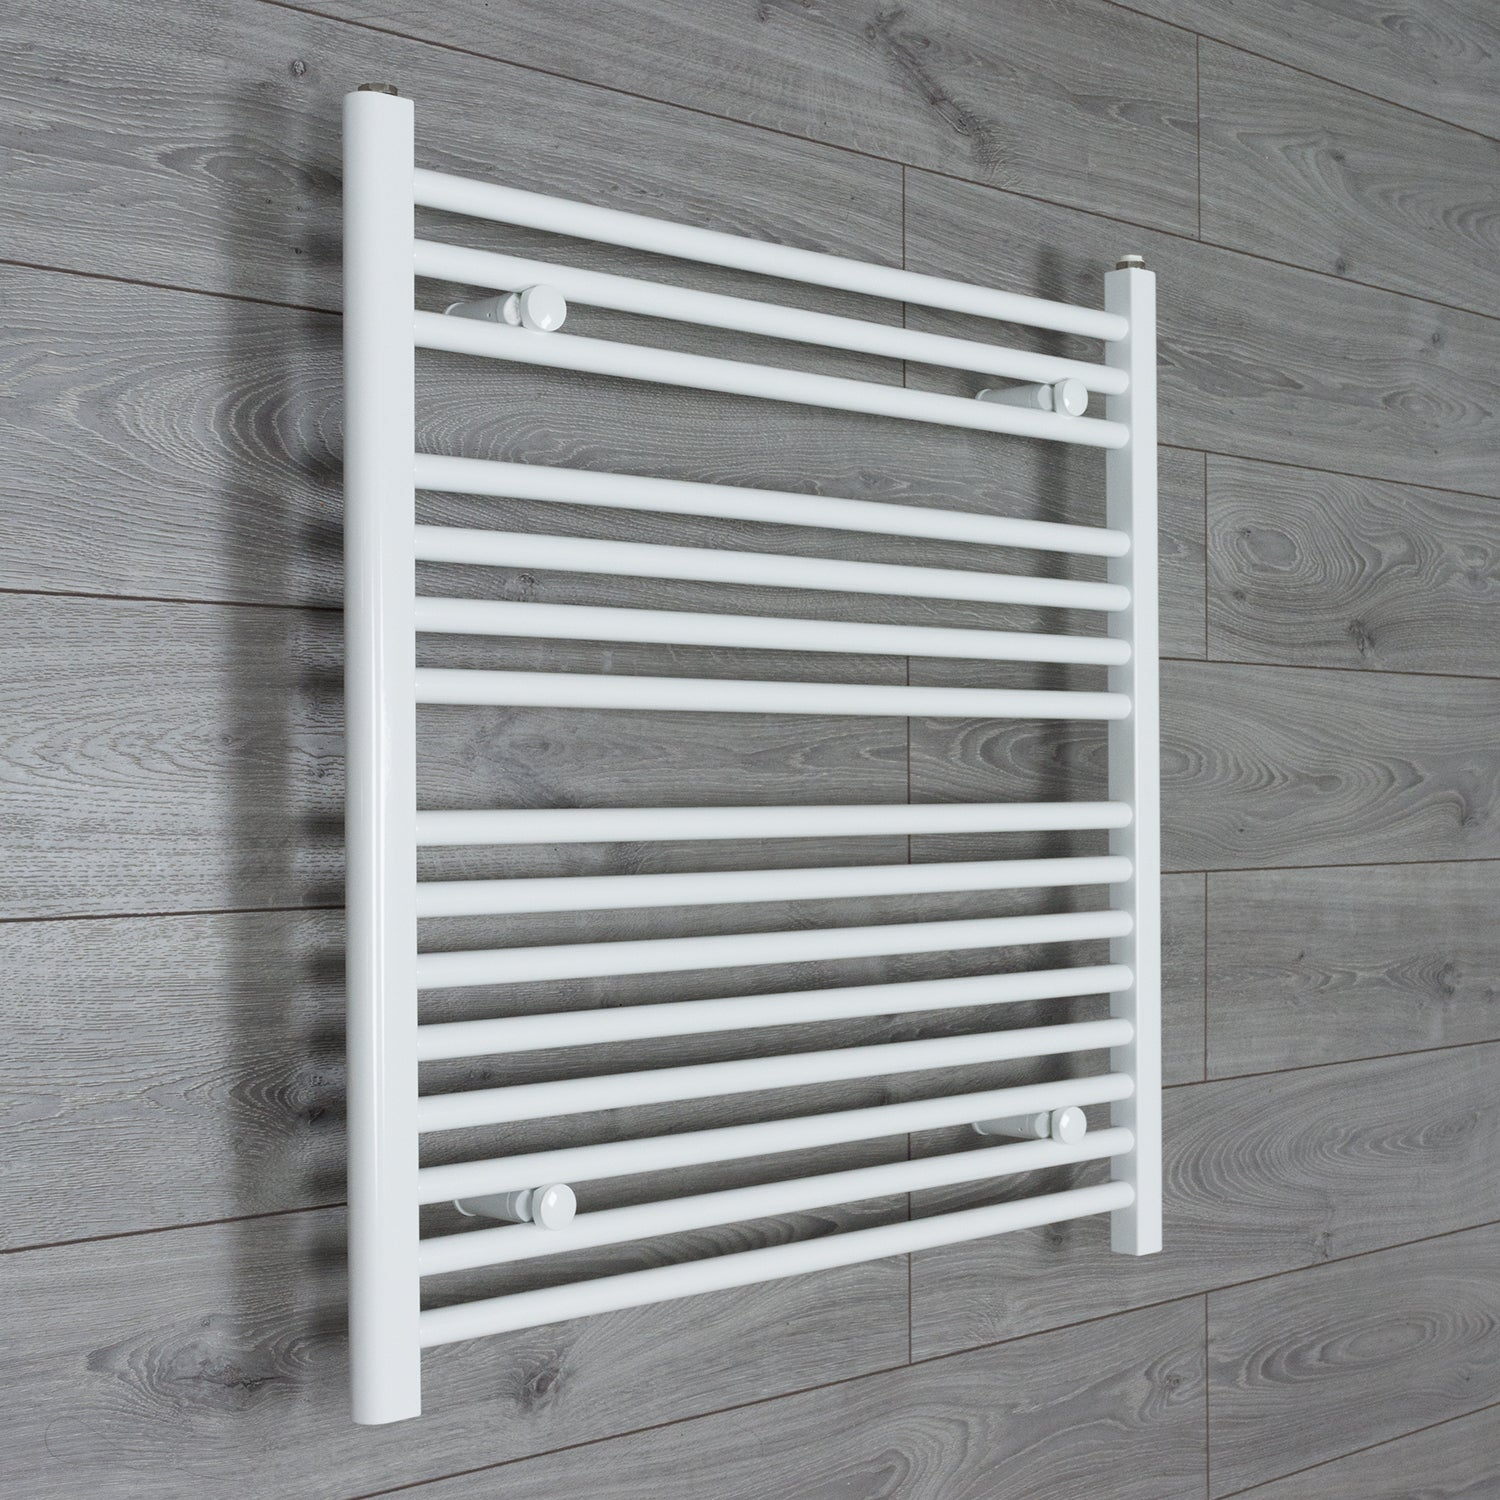 900mm Wide 800mm High Flat White Heated Towel Rail Radiator HTR,Towel Rail Only